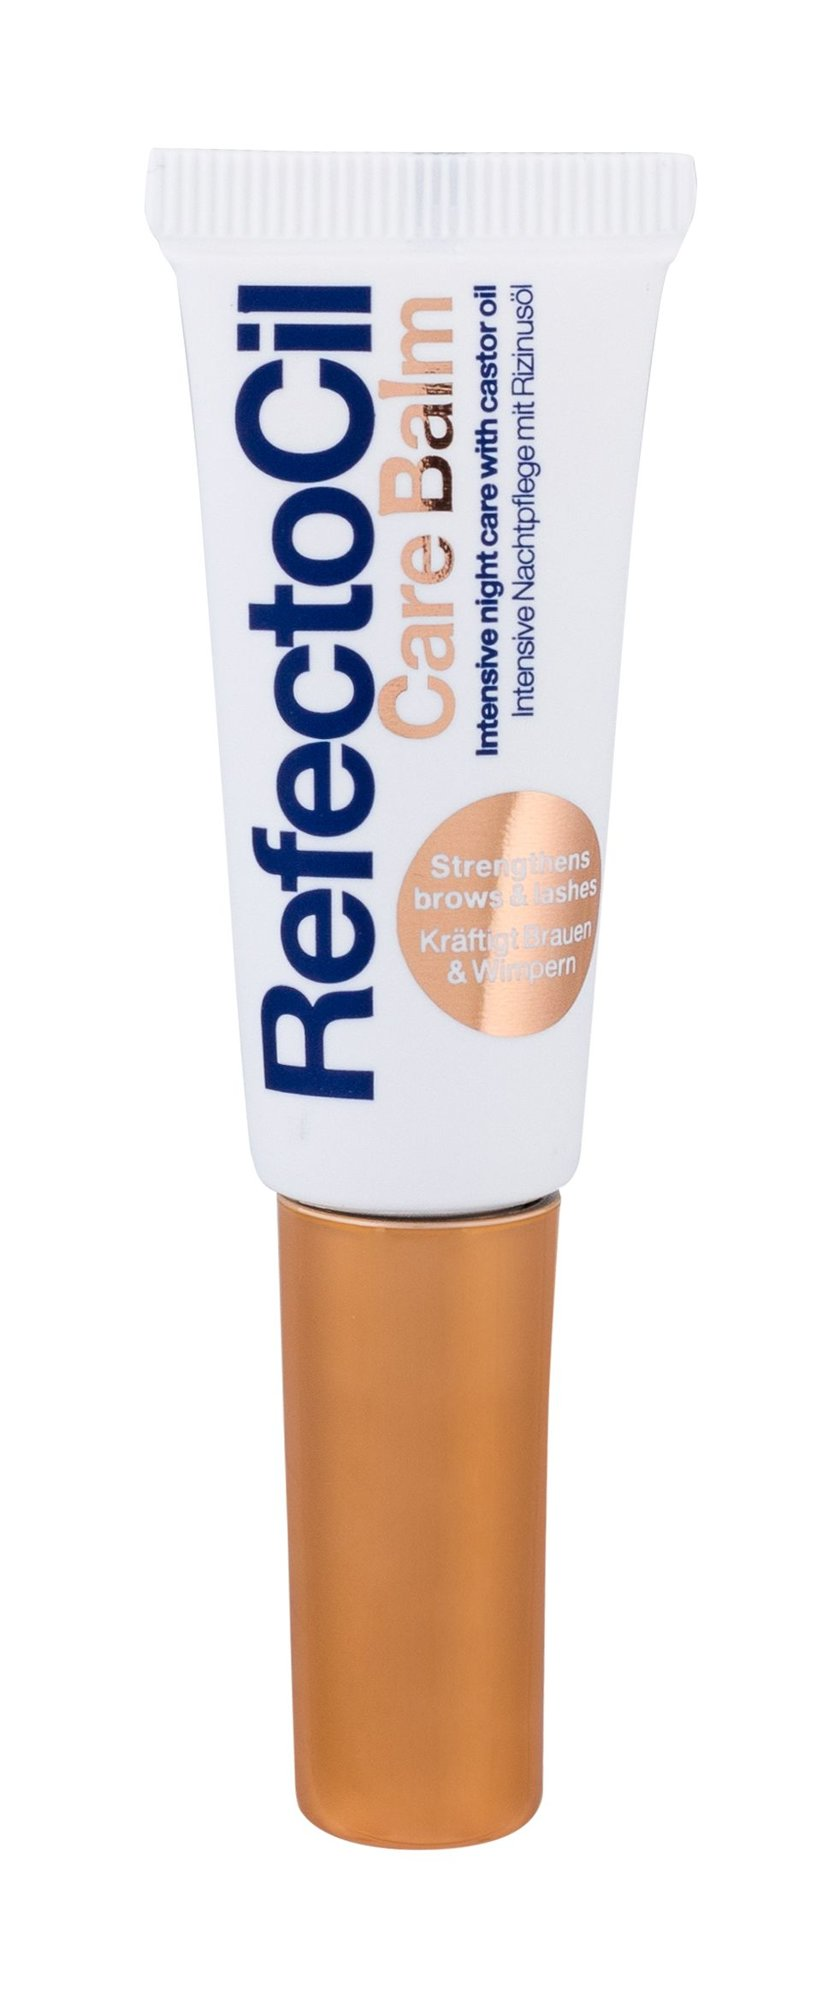 RefectoCil Care Balm Eyelashes Care 9ml